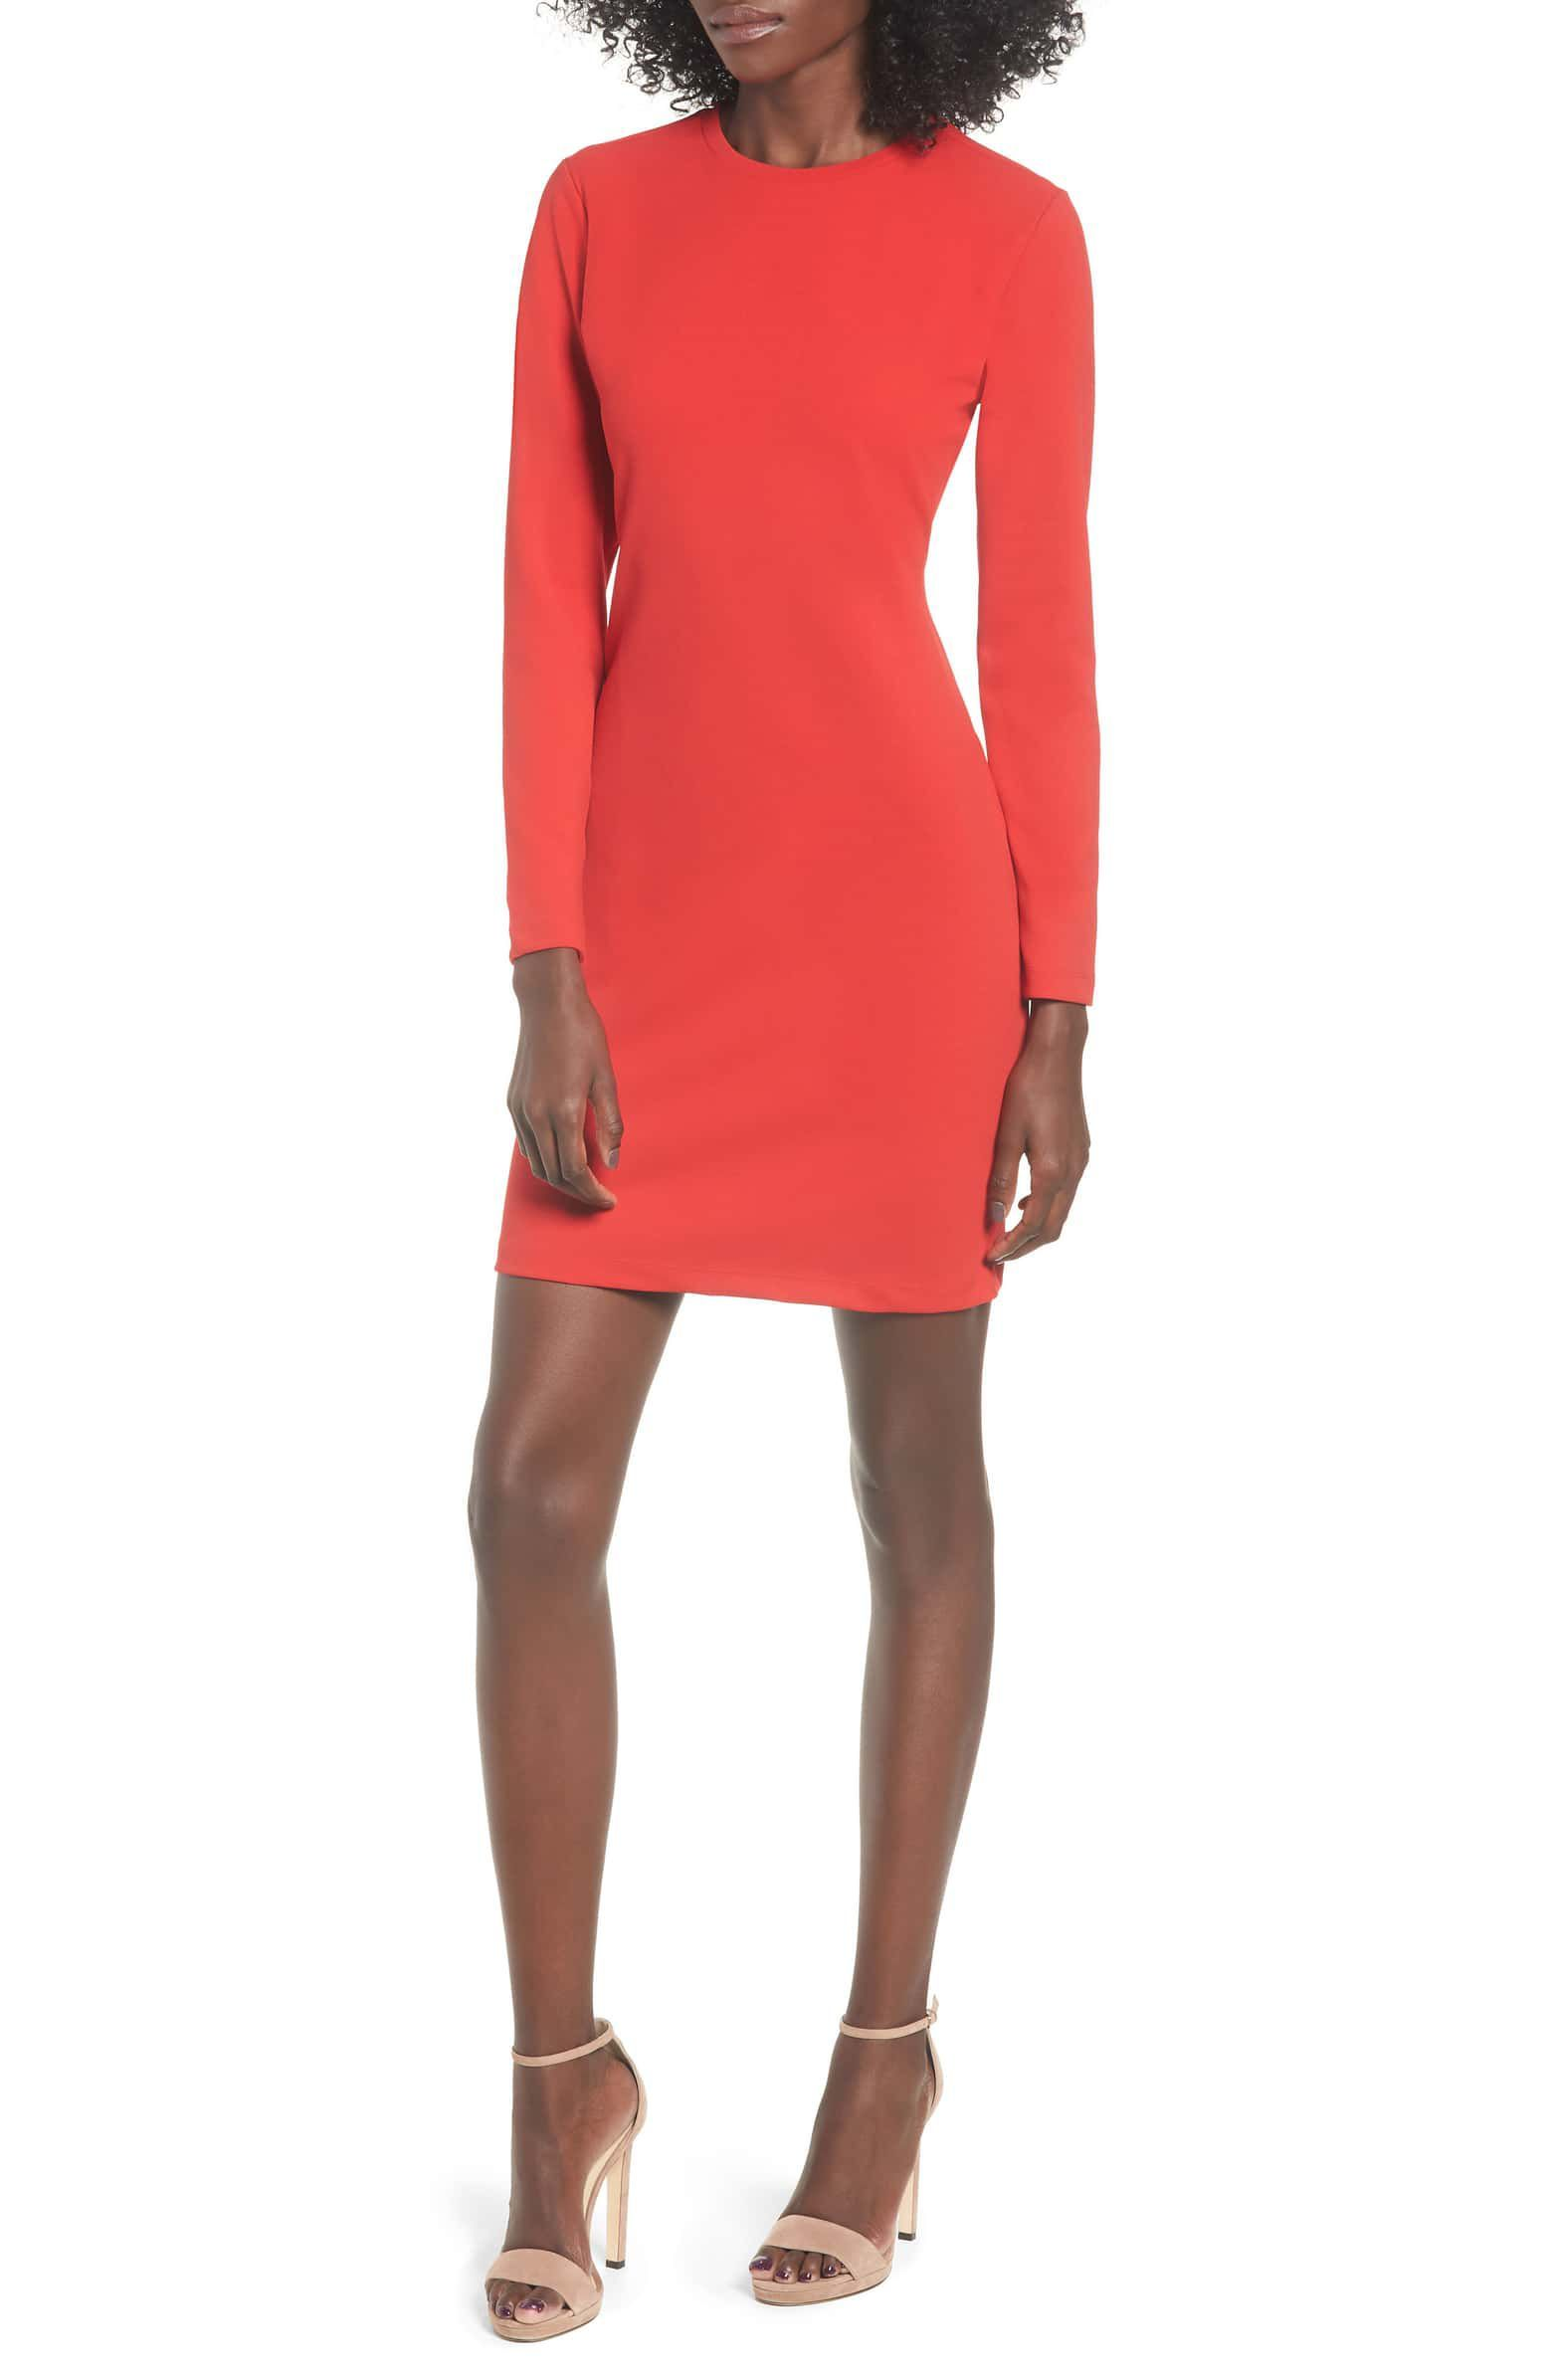 25 Best Winter Wedding Guest Dresses - What to Wear to a Winter Wedding